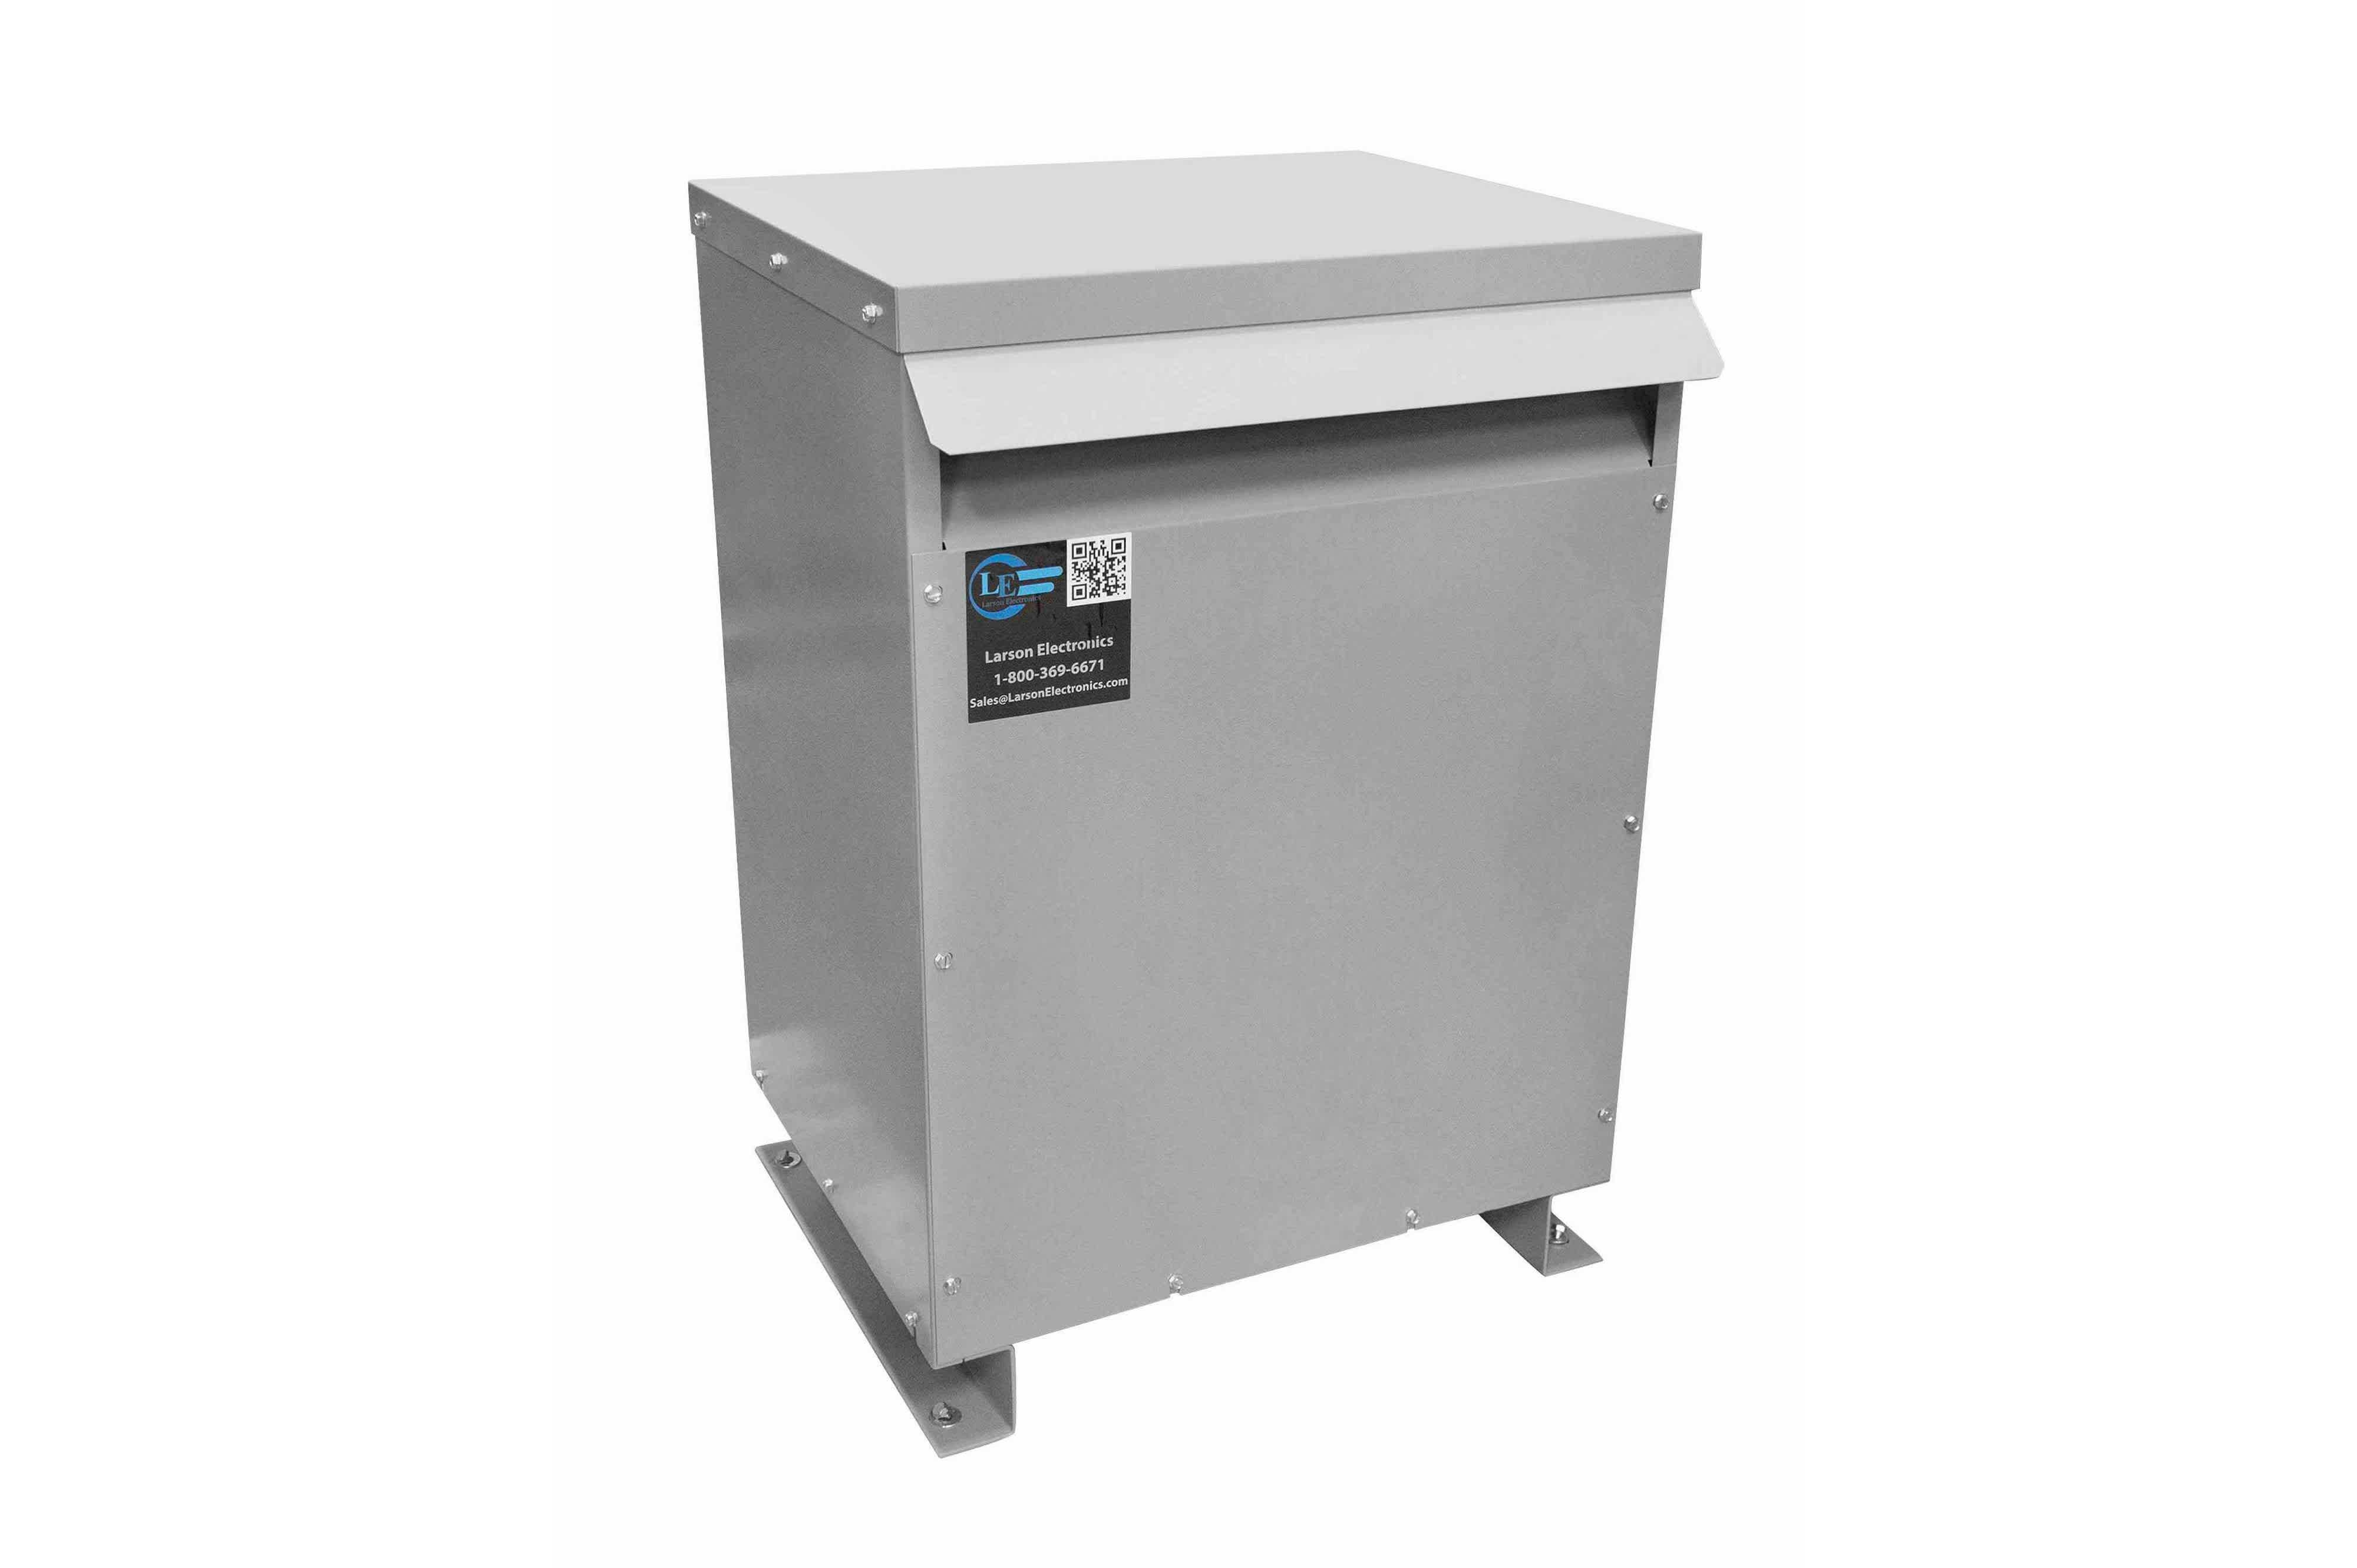 50 kVA 3PH Isolation Transformer, 575V Wye Primary, 415V Delta Secondary, N3R, Ventilated, 60 Hz